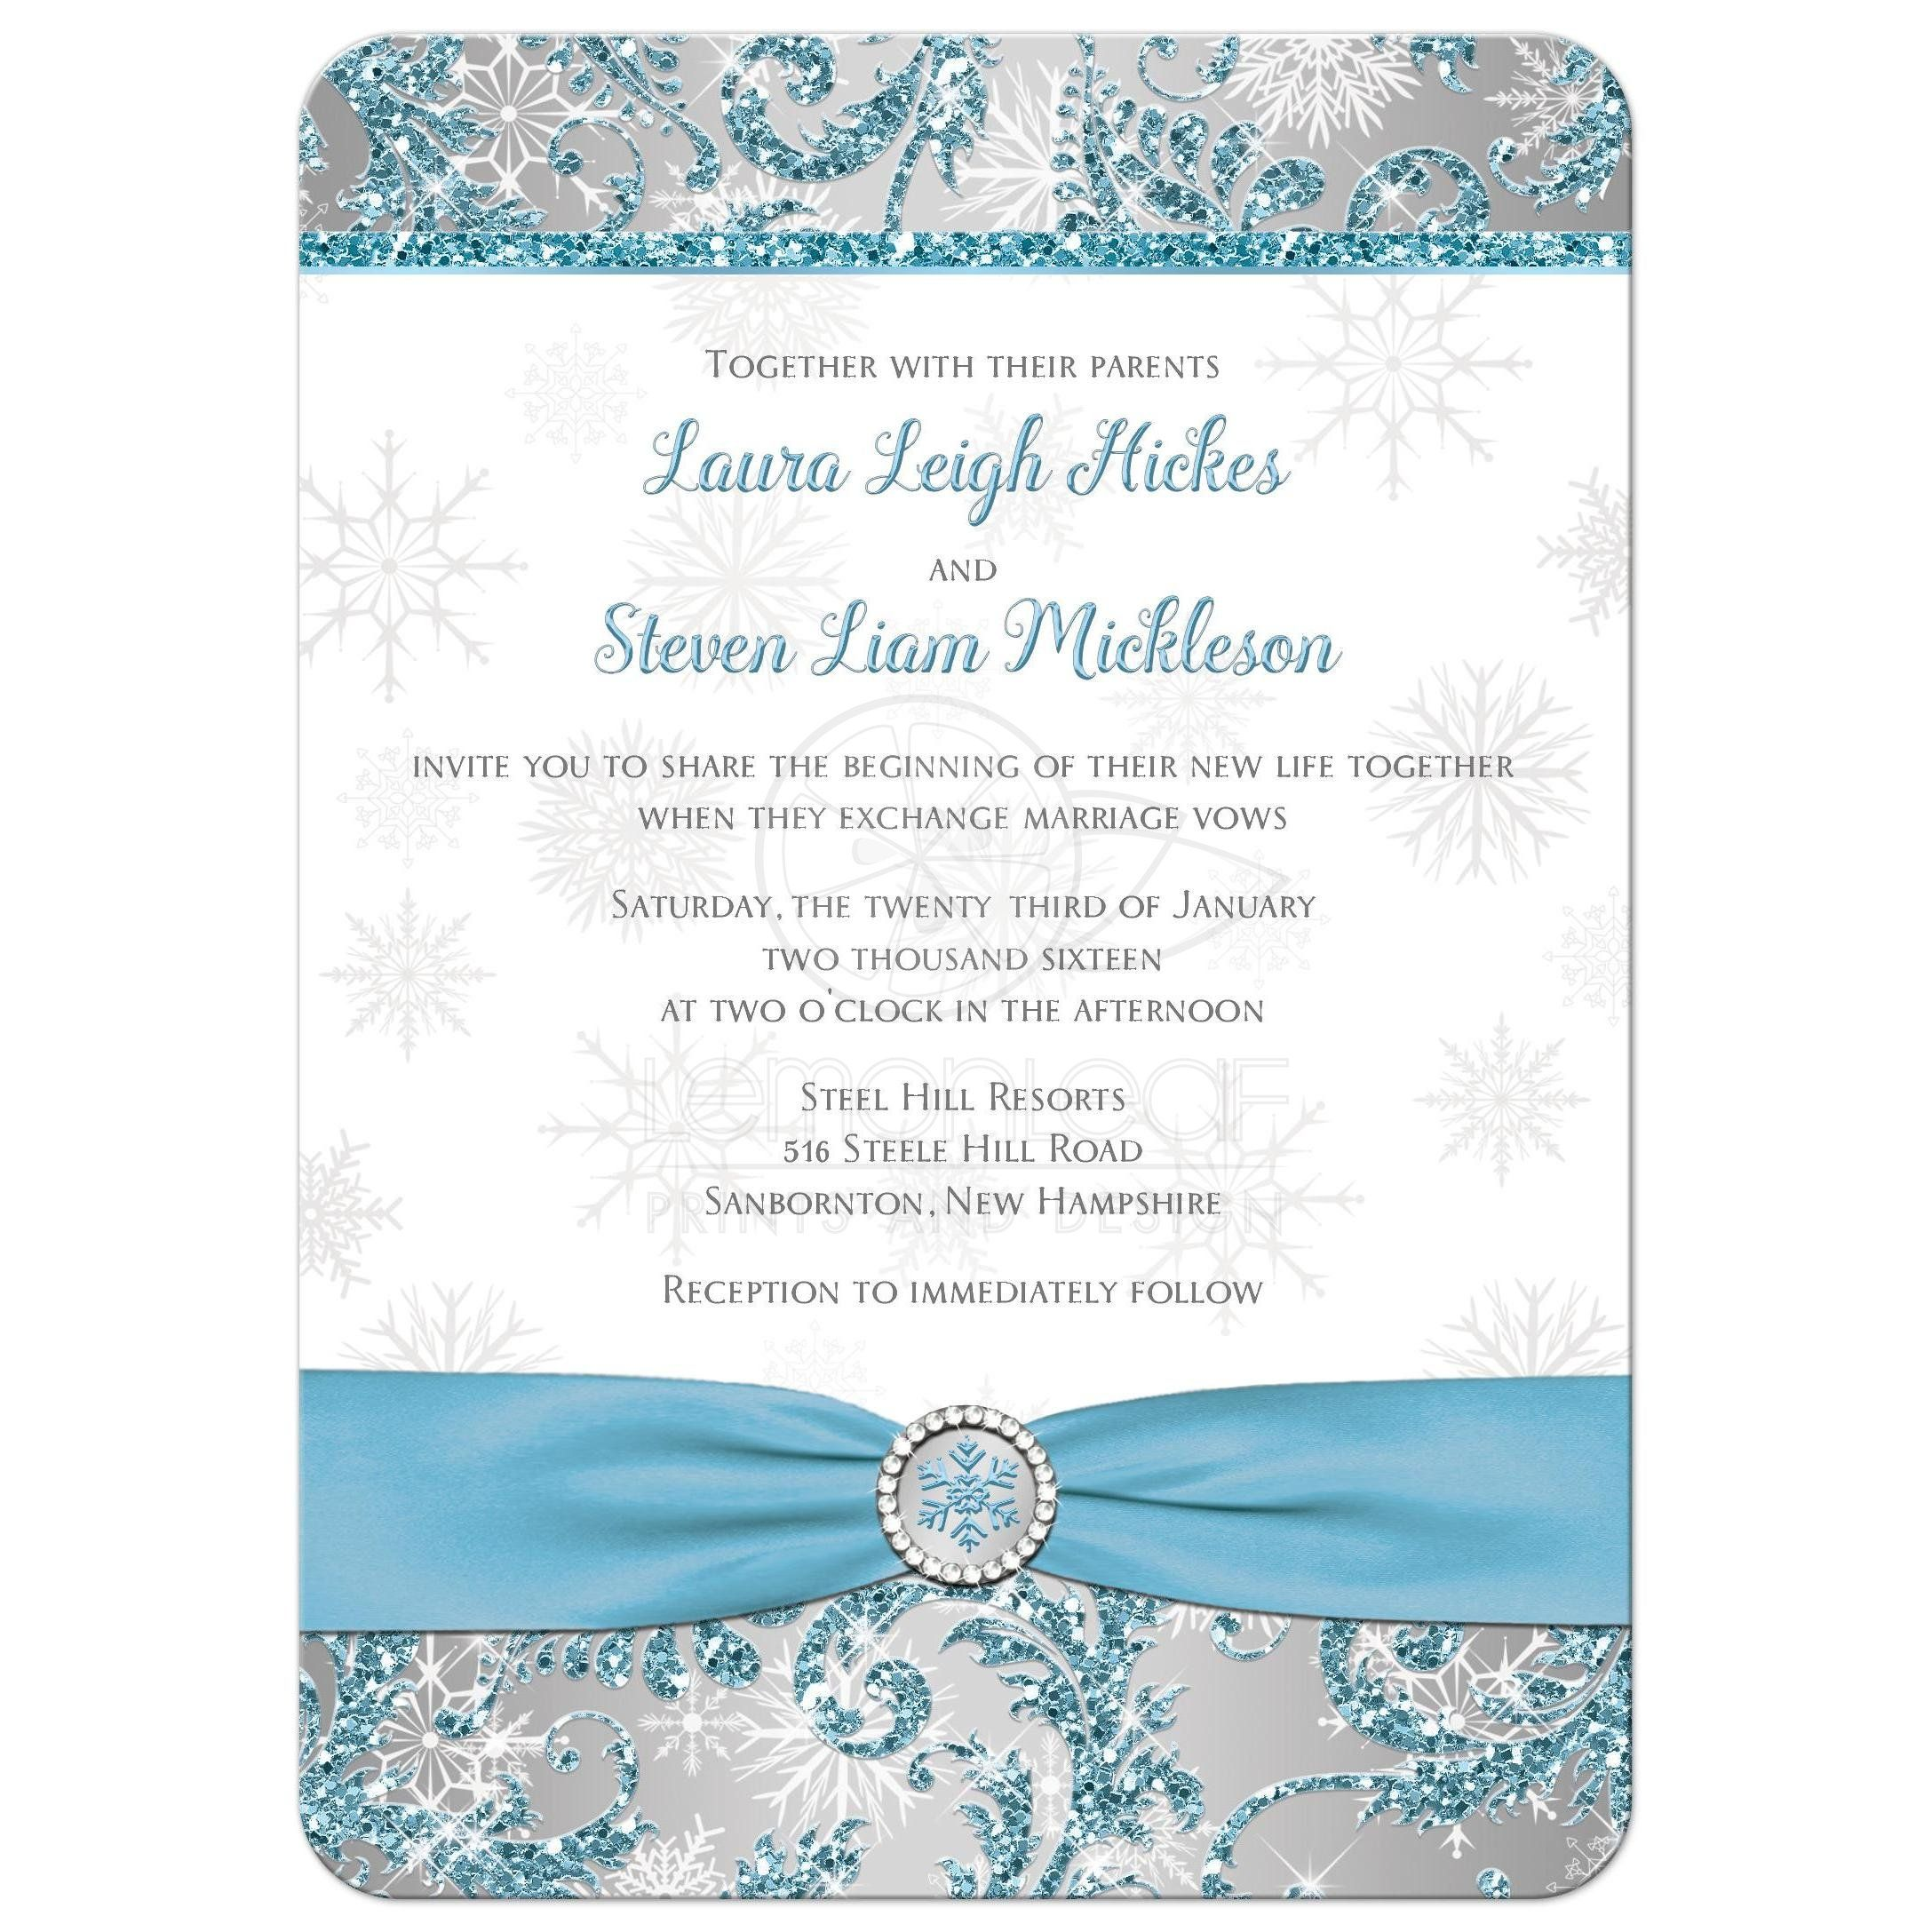 Wedding Invite | Winter Wonderland 5 | Ice Blue, Silver, White ...